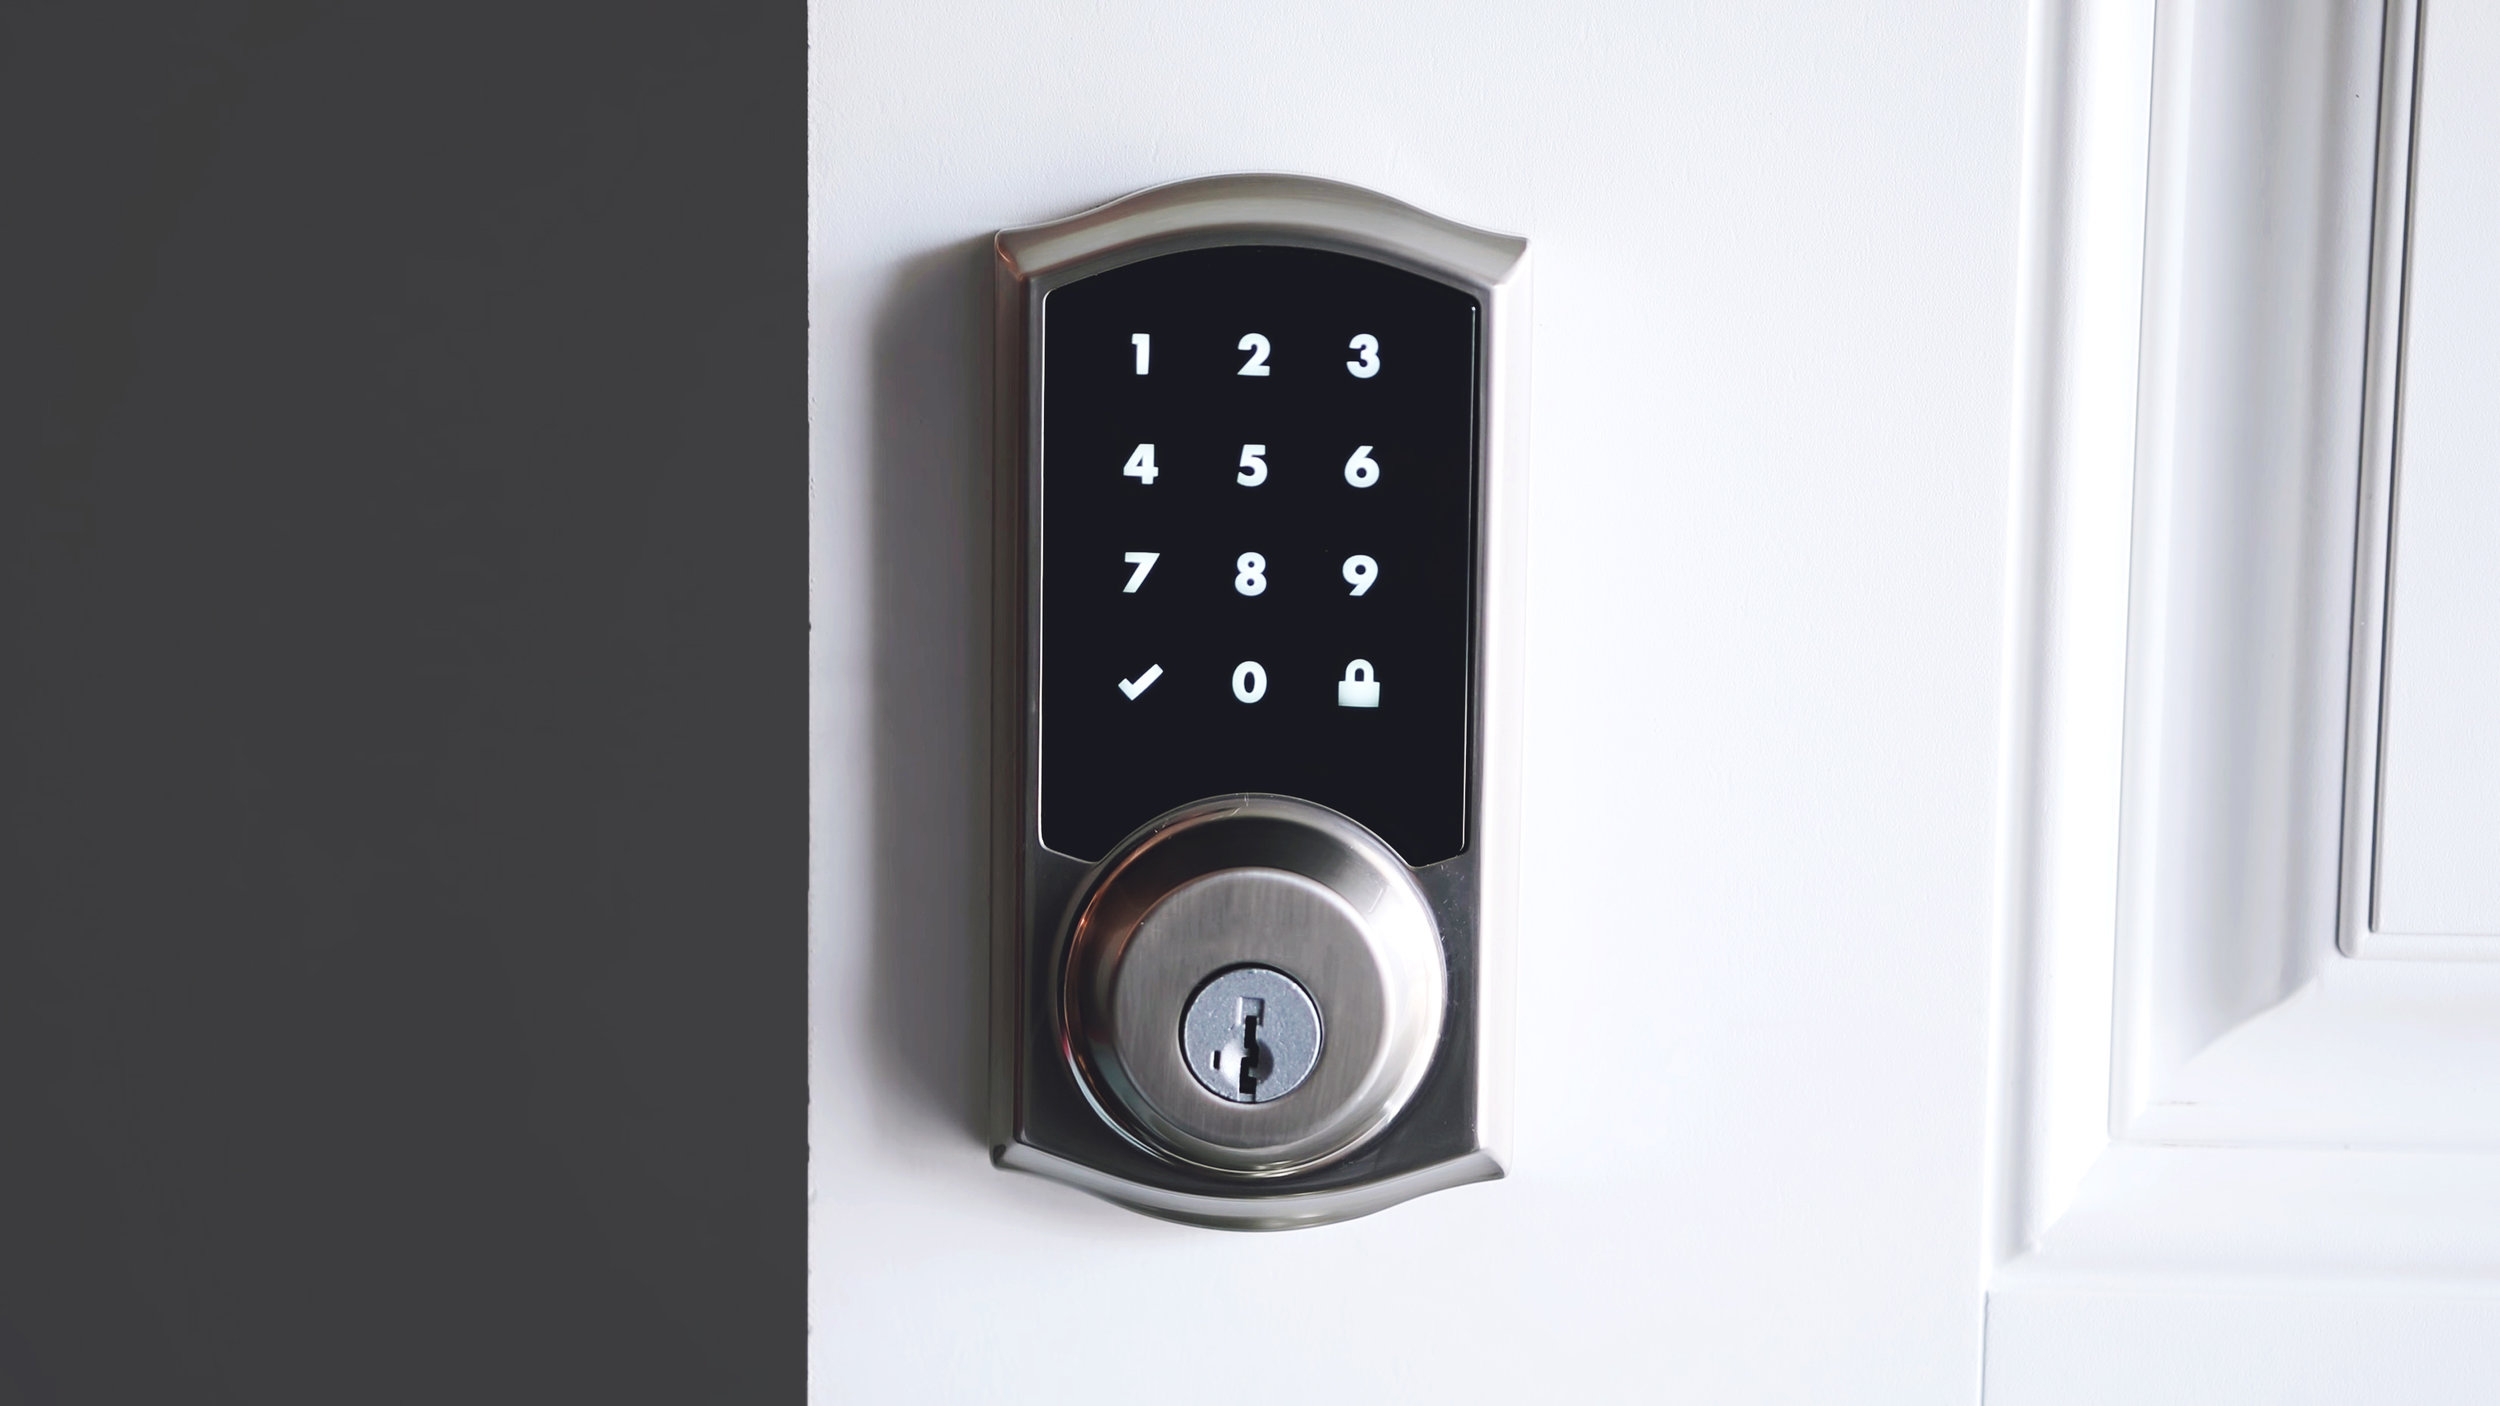 Electronic Keyless Entry by Password Code Bluetooth Digital Lock Levers Black Keyless Smart Lever Door Lock Touchscreen Digital Code Entry Security Safety Lever with Backup Keys